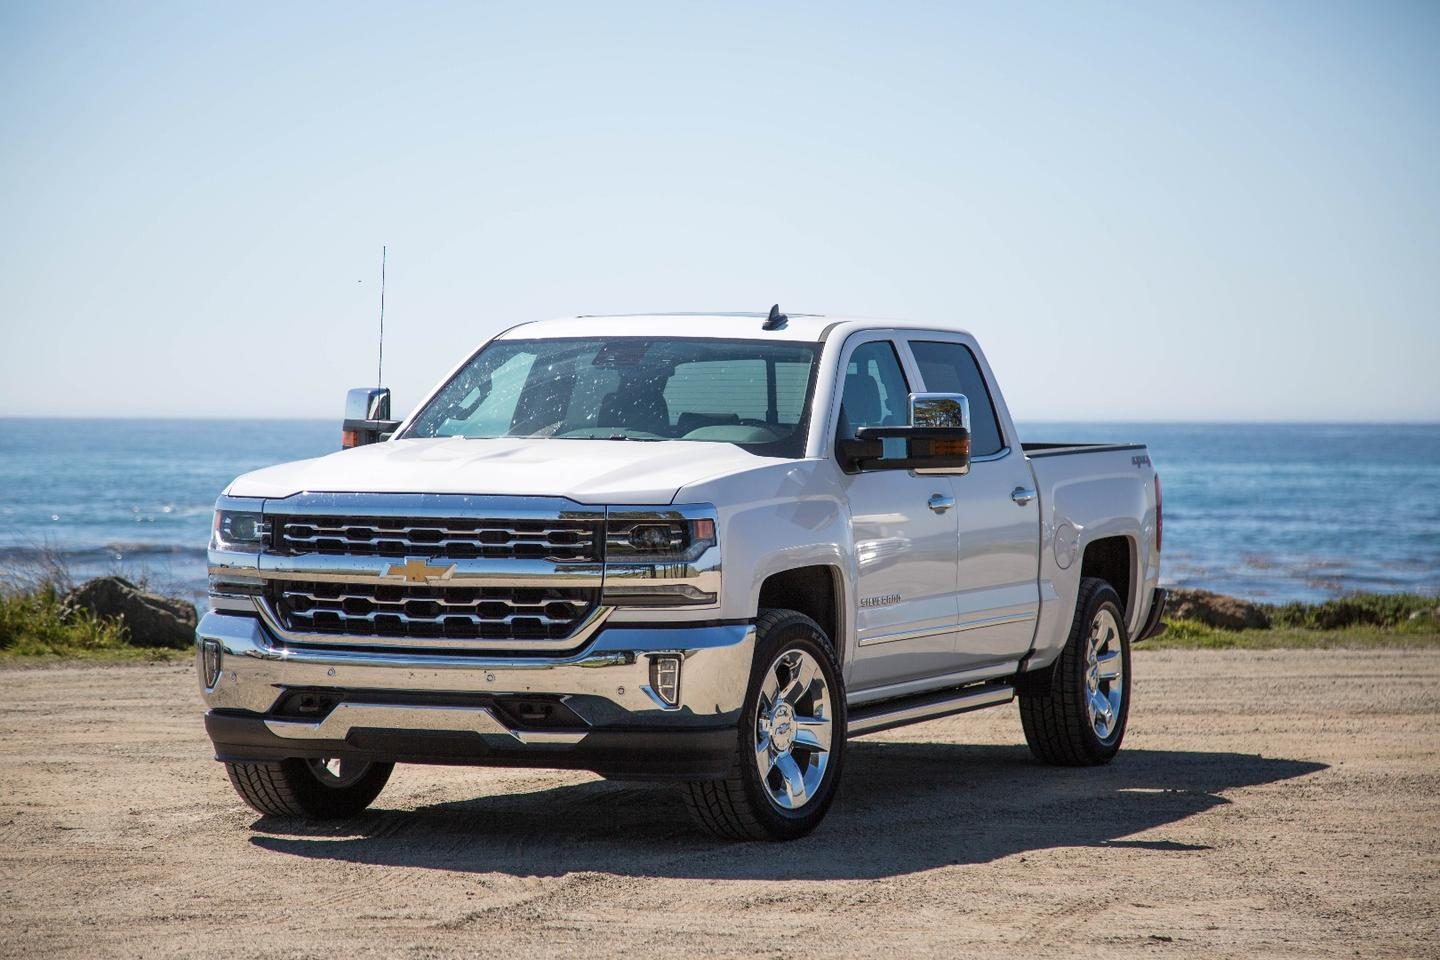 The Chevrolet Silverado 1500 LTZ, complete with bug-spattered windscreen, on California's Route 1